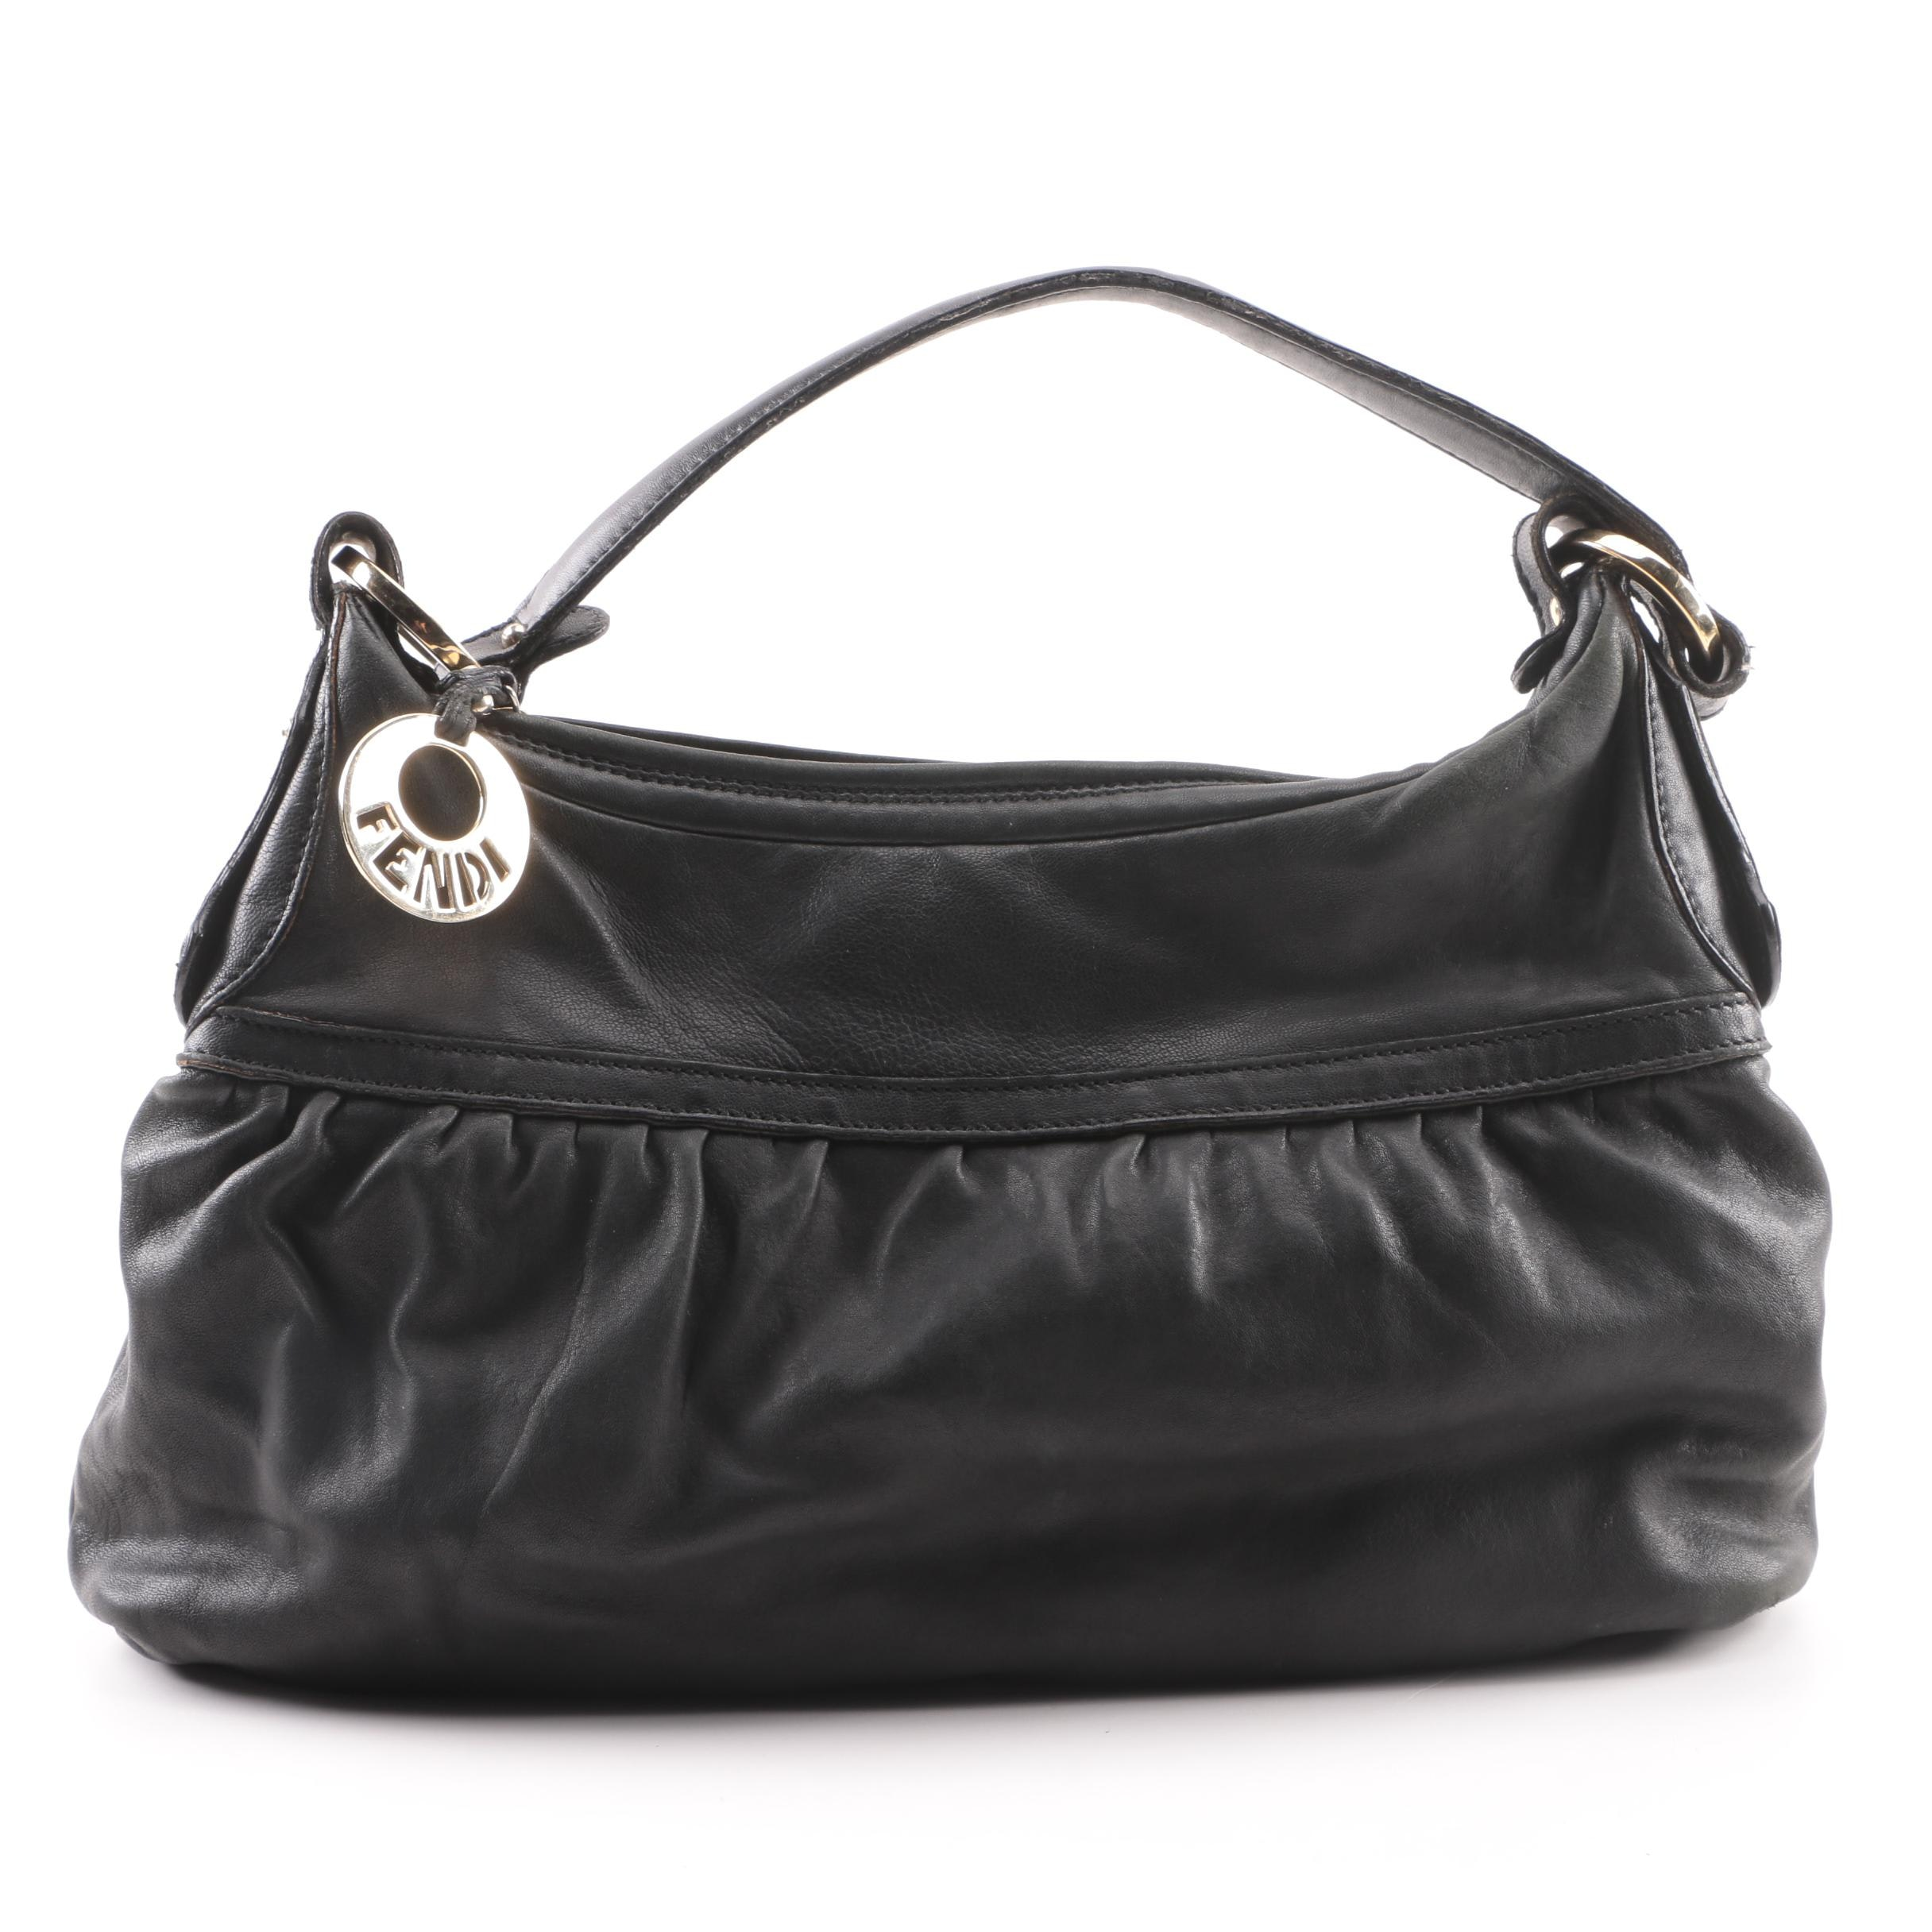 Fendi Black Leather Hobo Bag